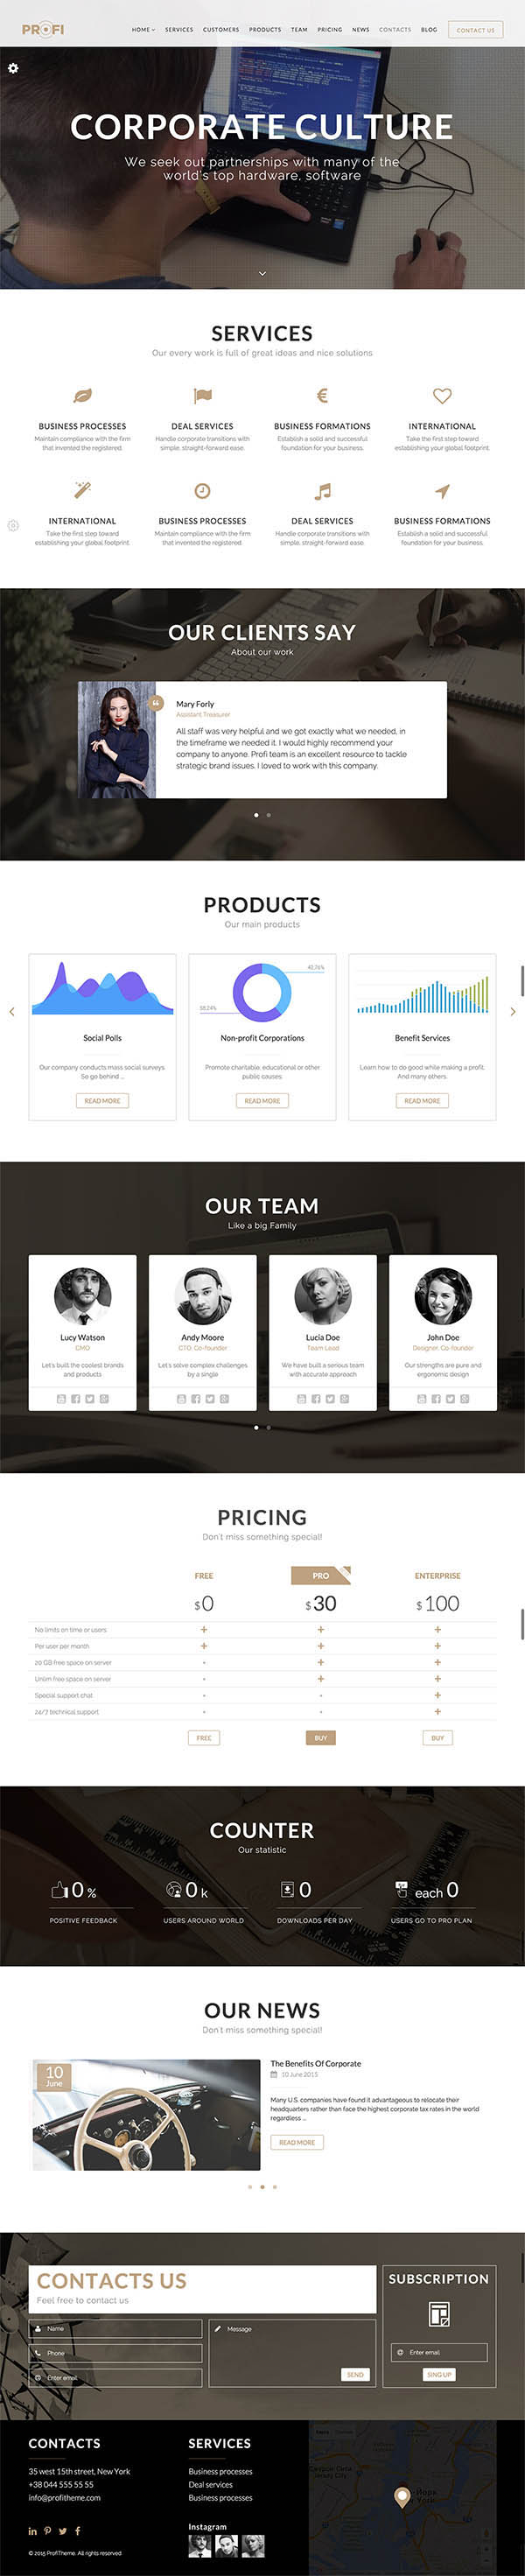 Profi : Multipurpose Corporate WordPress Theme